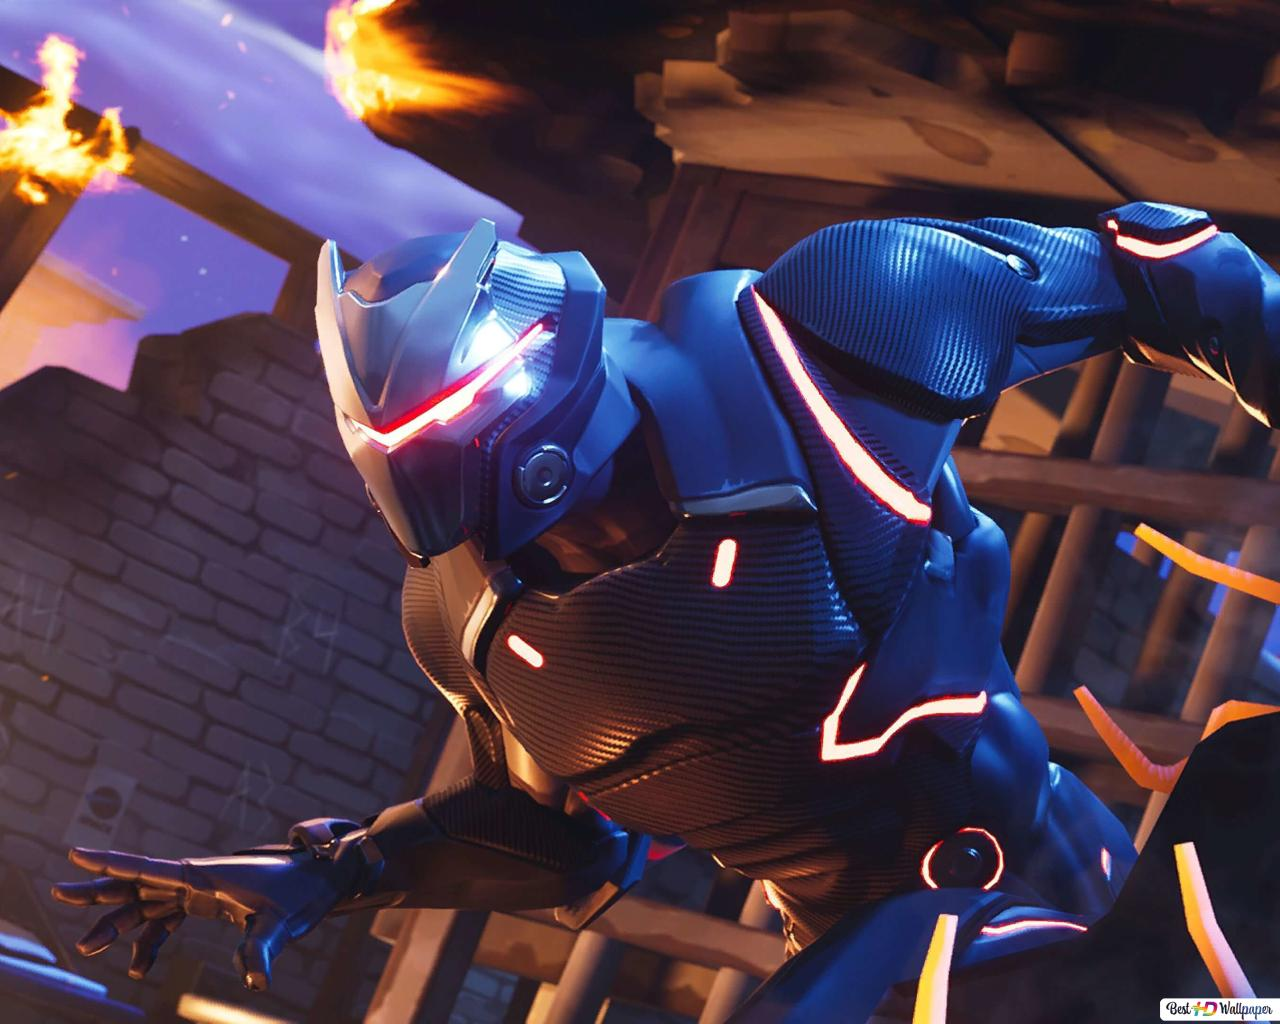 Descargar Fondo De Pantalla Fortnite Battle Royale Omega